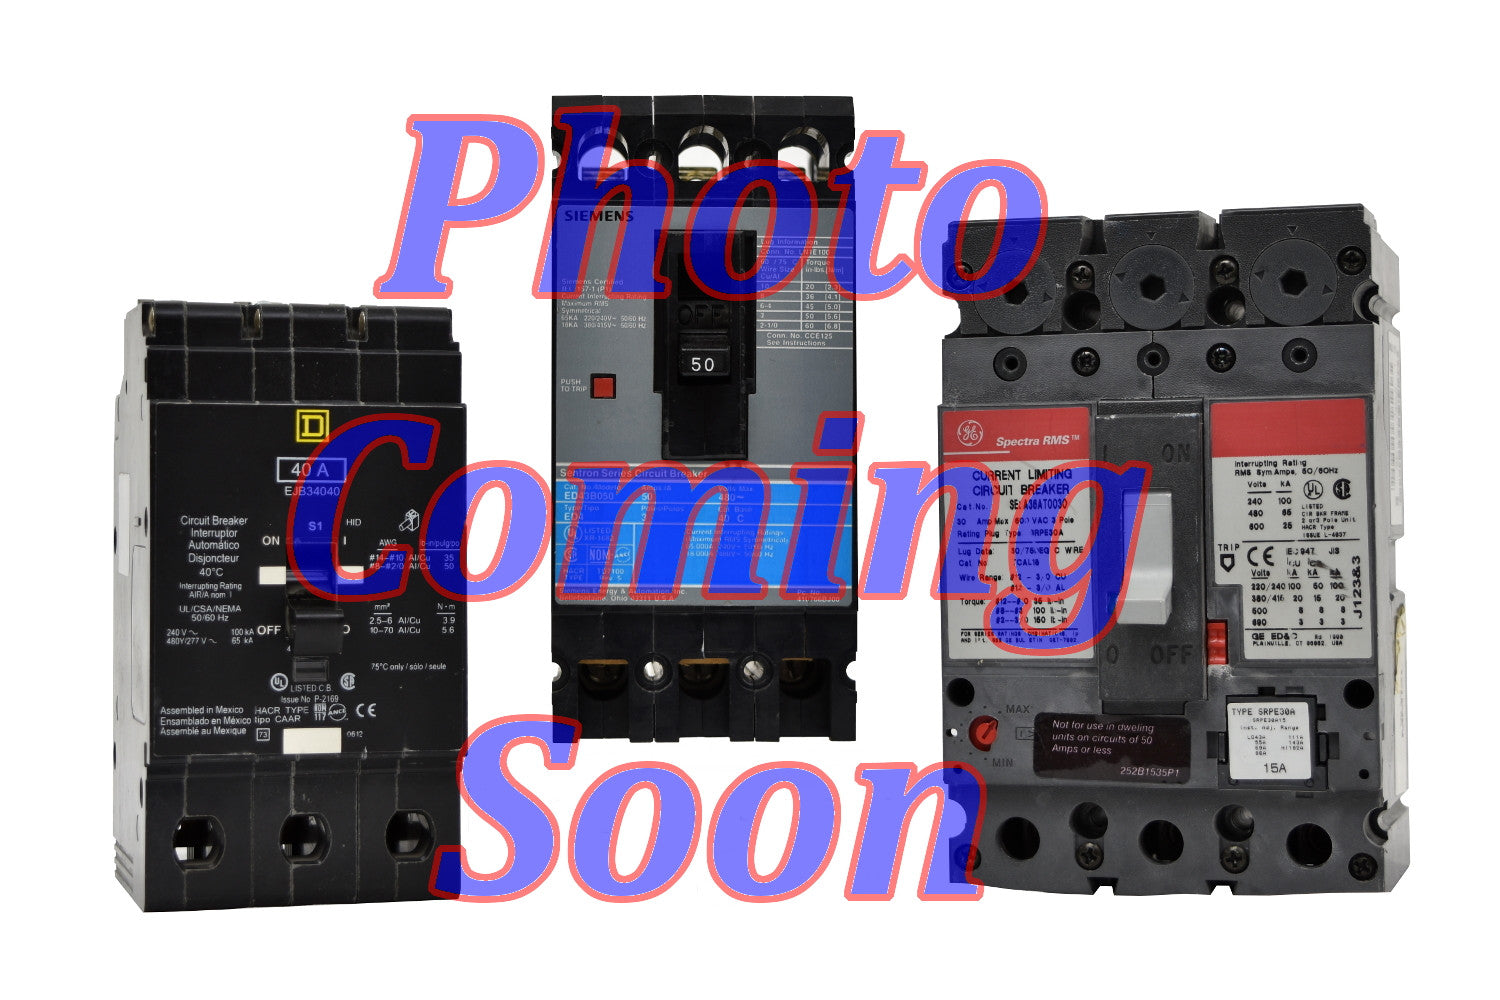 General Electric FCV36TE100R1 Circuit Breakers